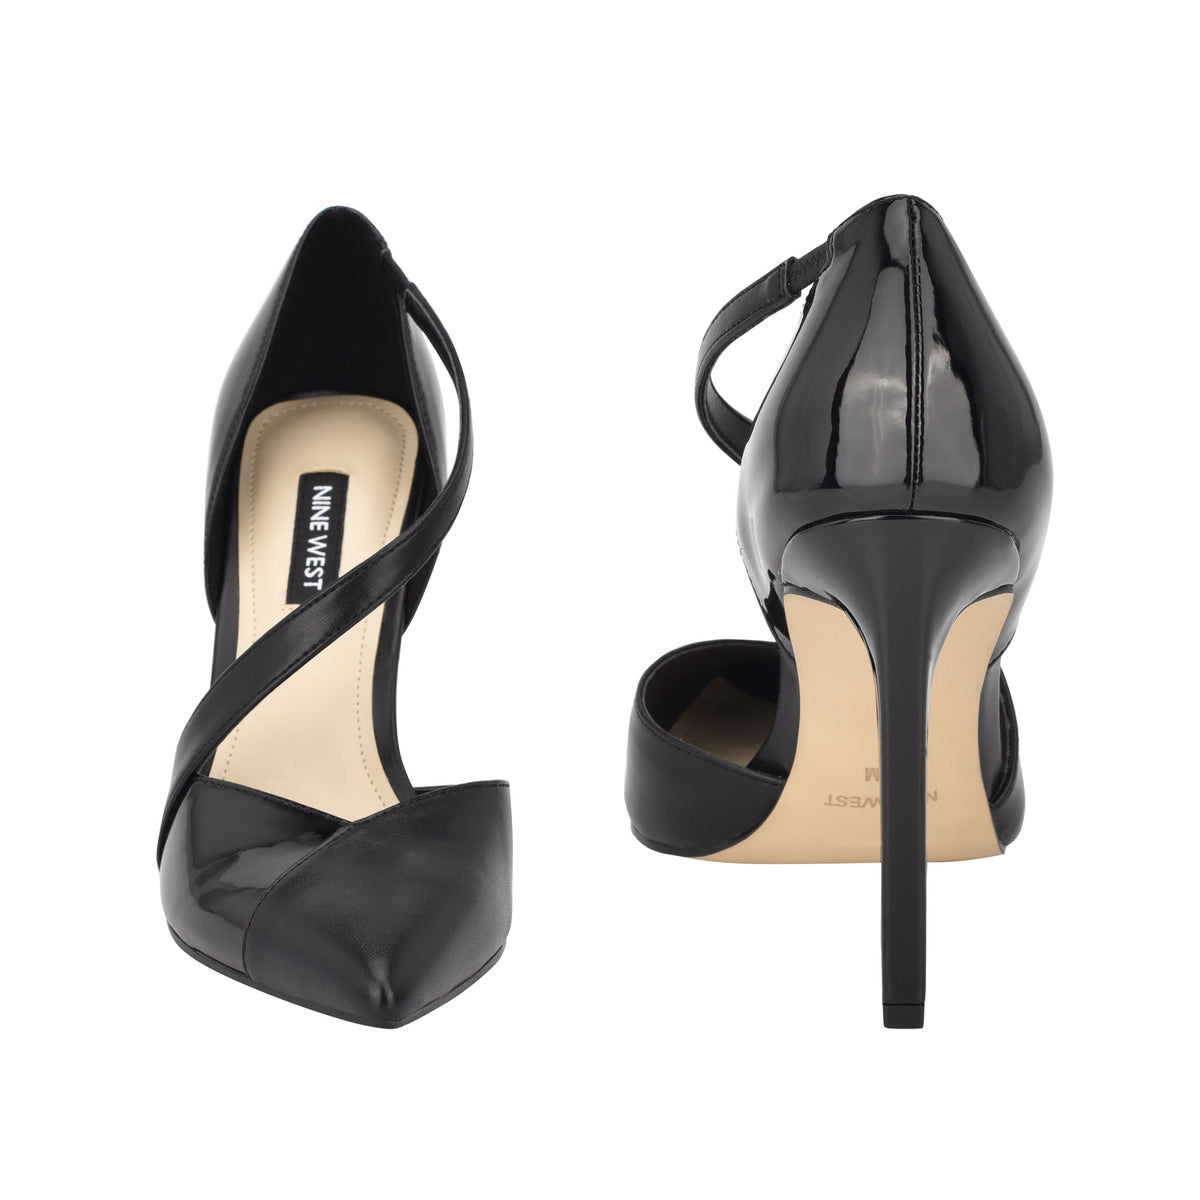 Tinley Asymmetrical Pumps